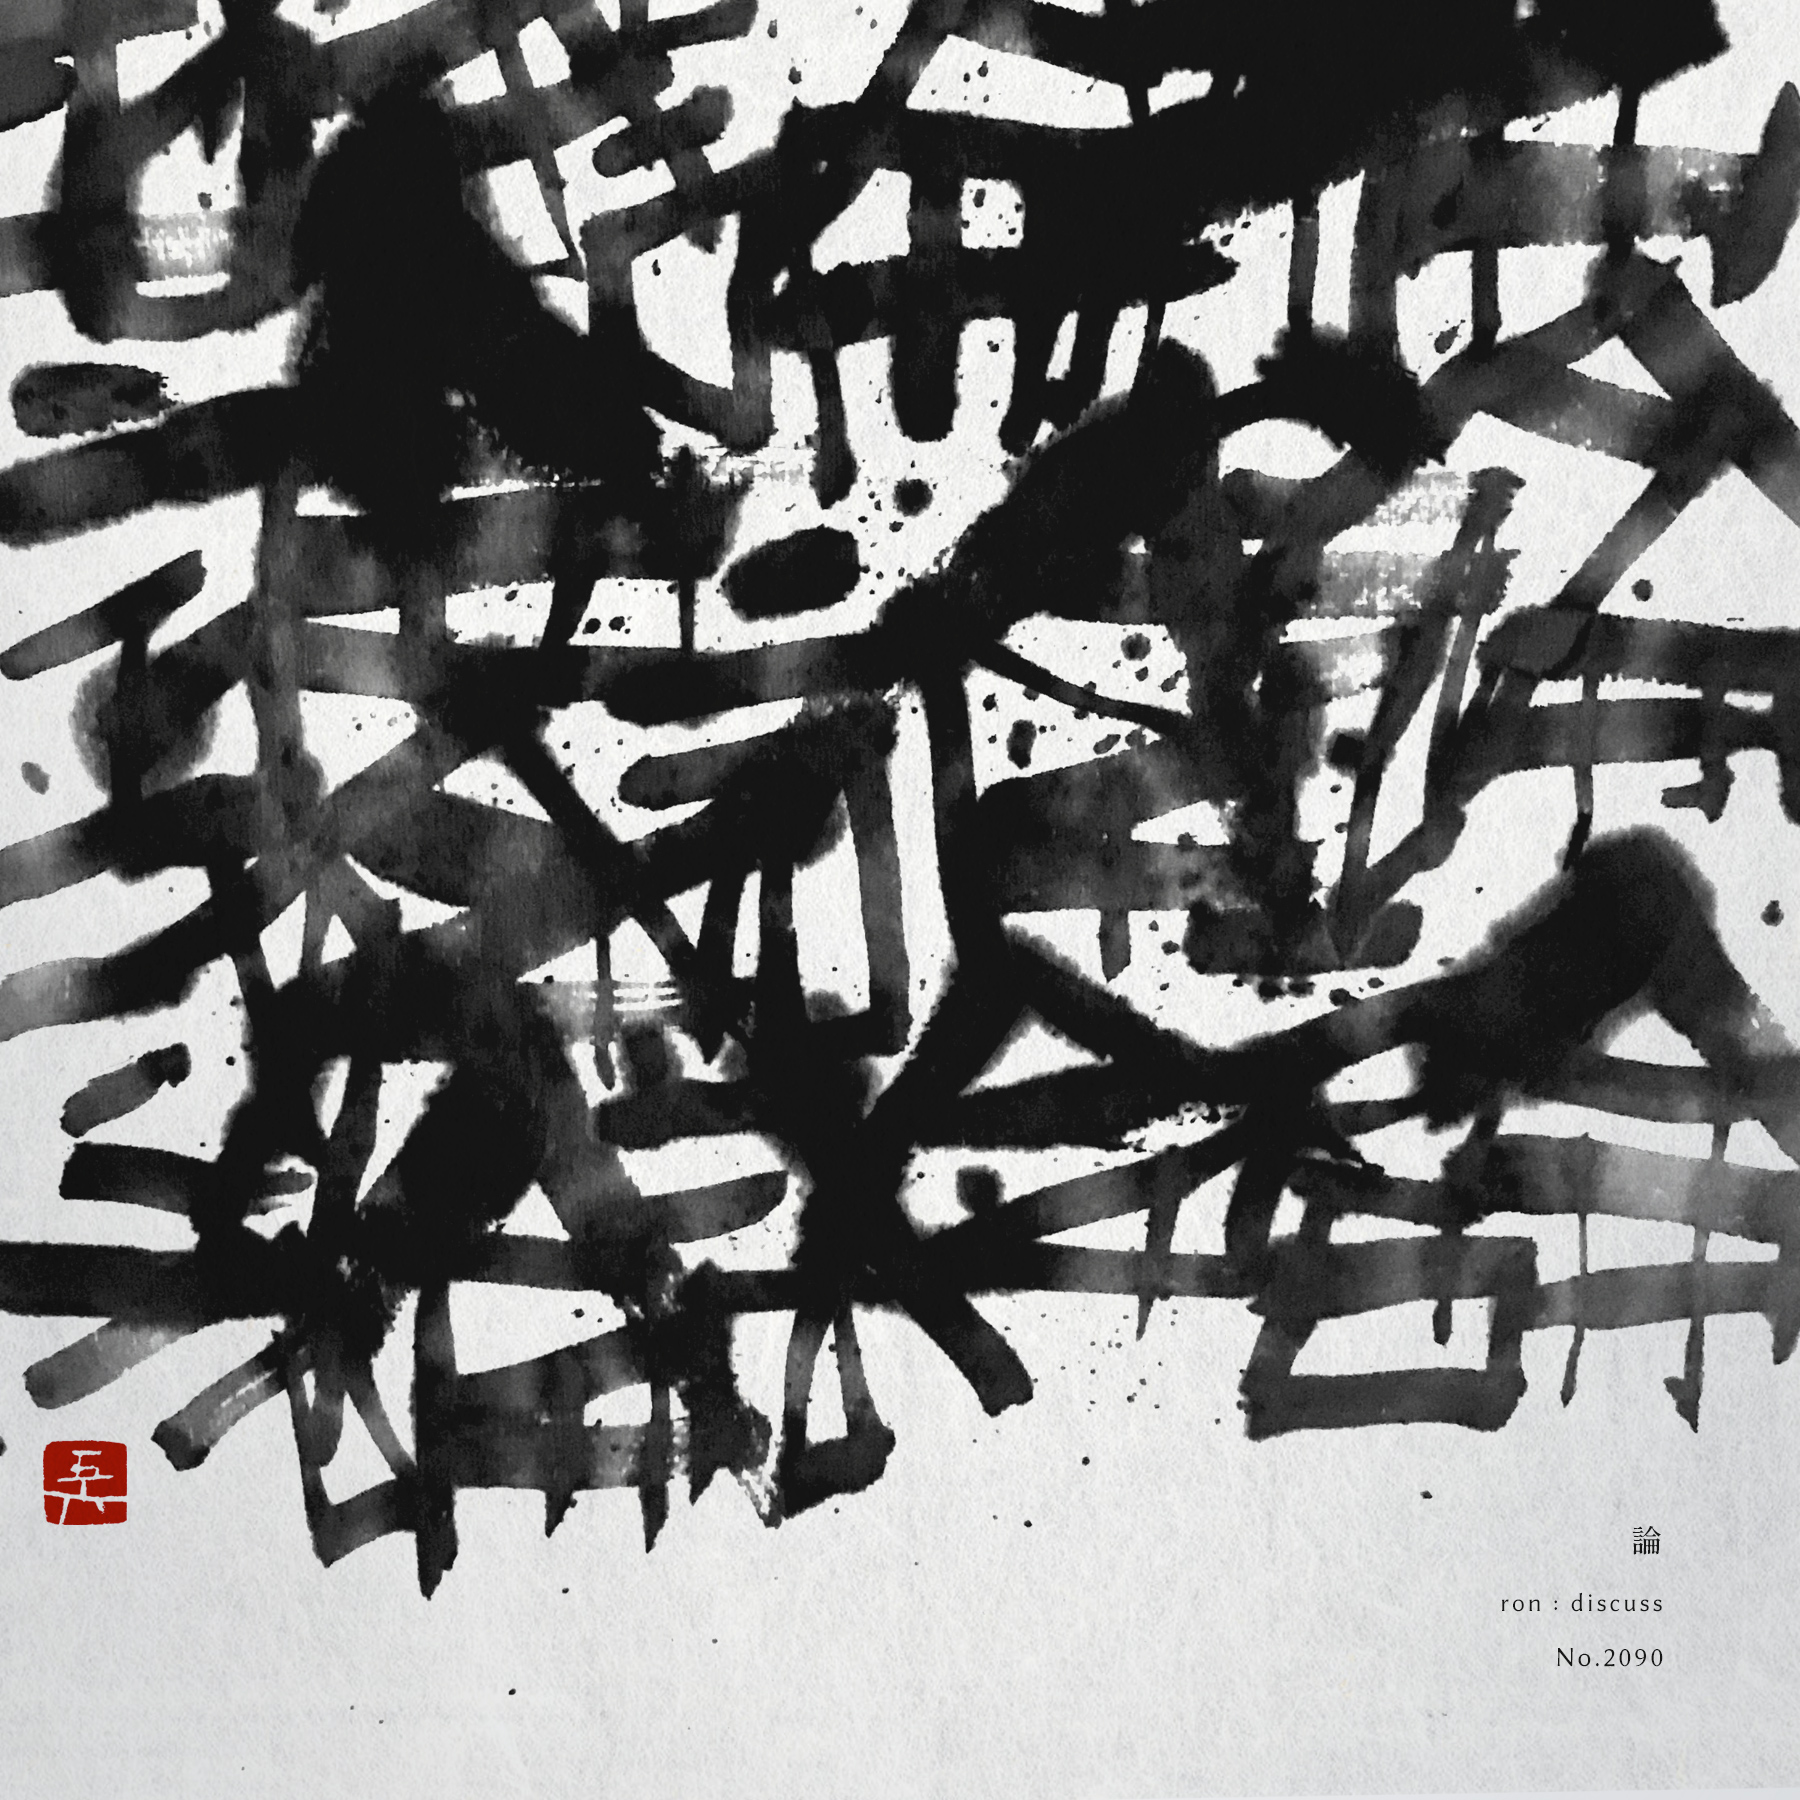 論 | discuss 書道作品 japaneseart japanese calligraphy 書家 田川悟郎 Goroh Tagawa